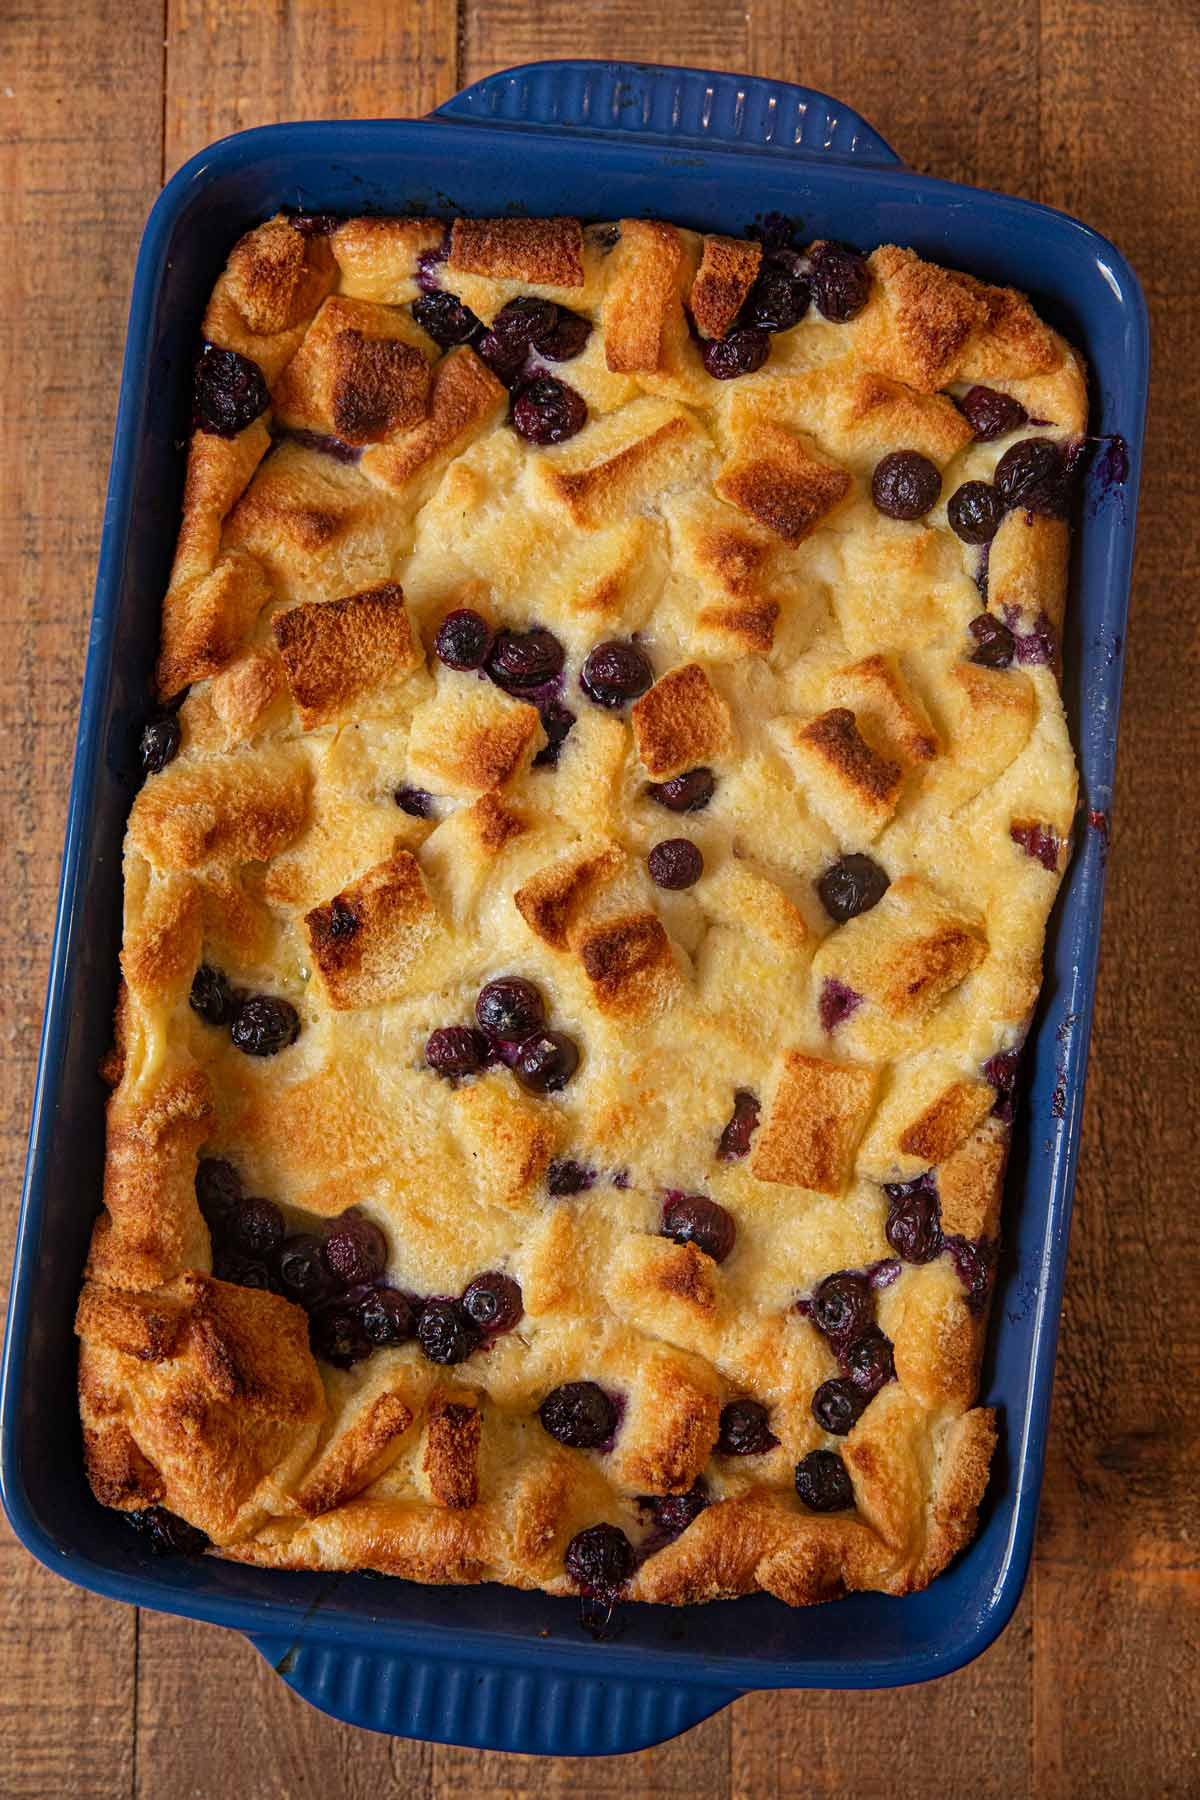 Blueberry Bread Pudding in baking dish